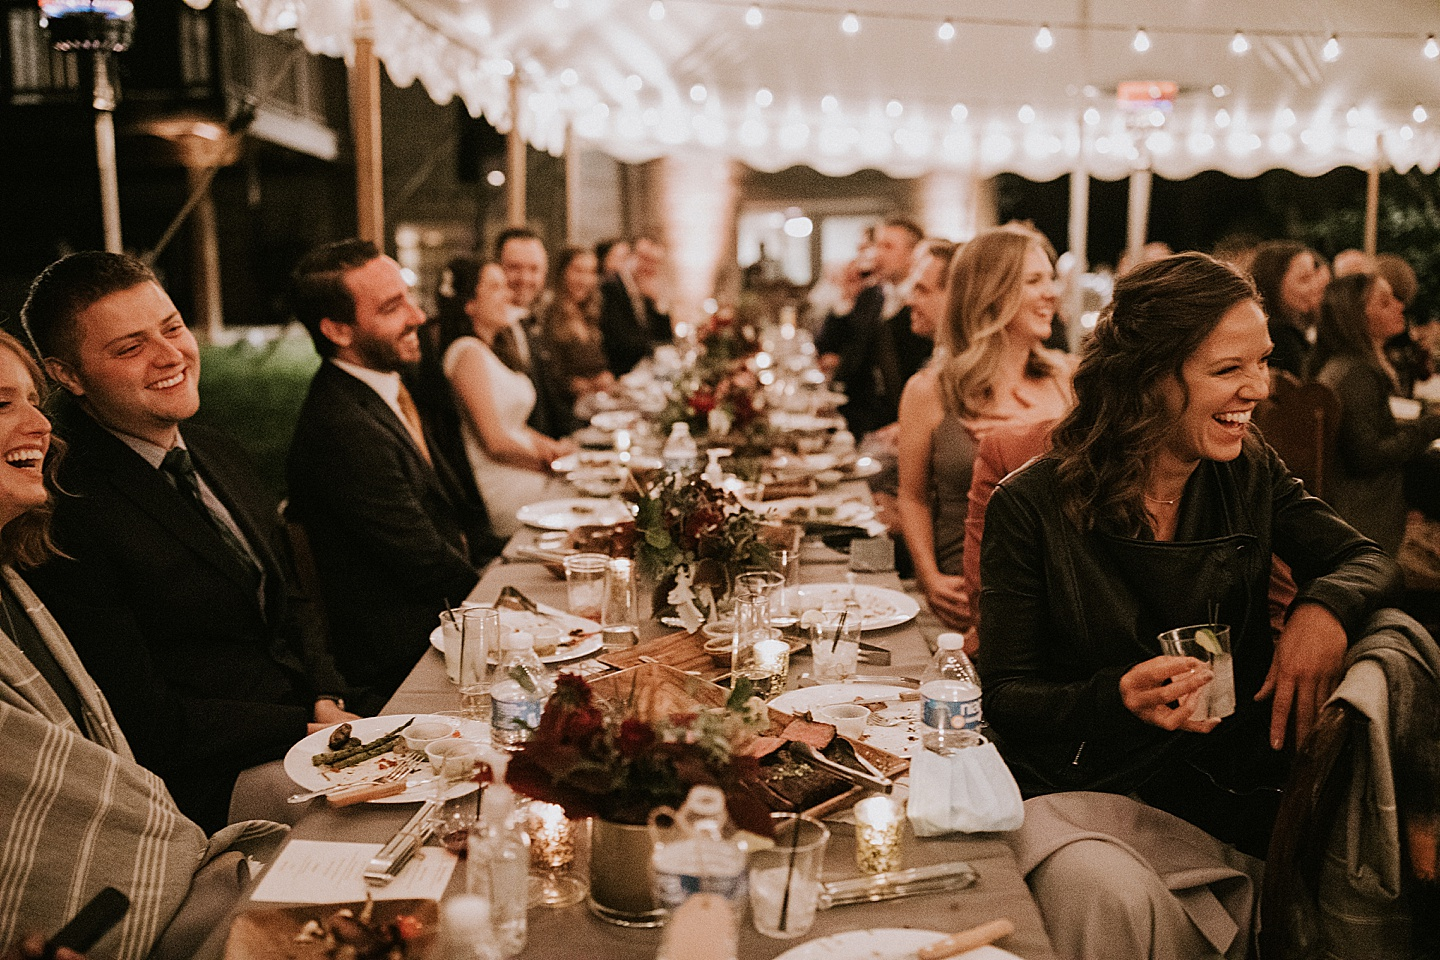 Guests seated at wedding